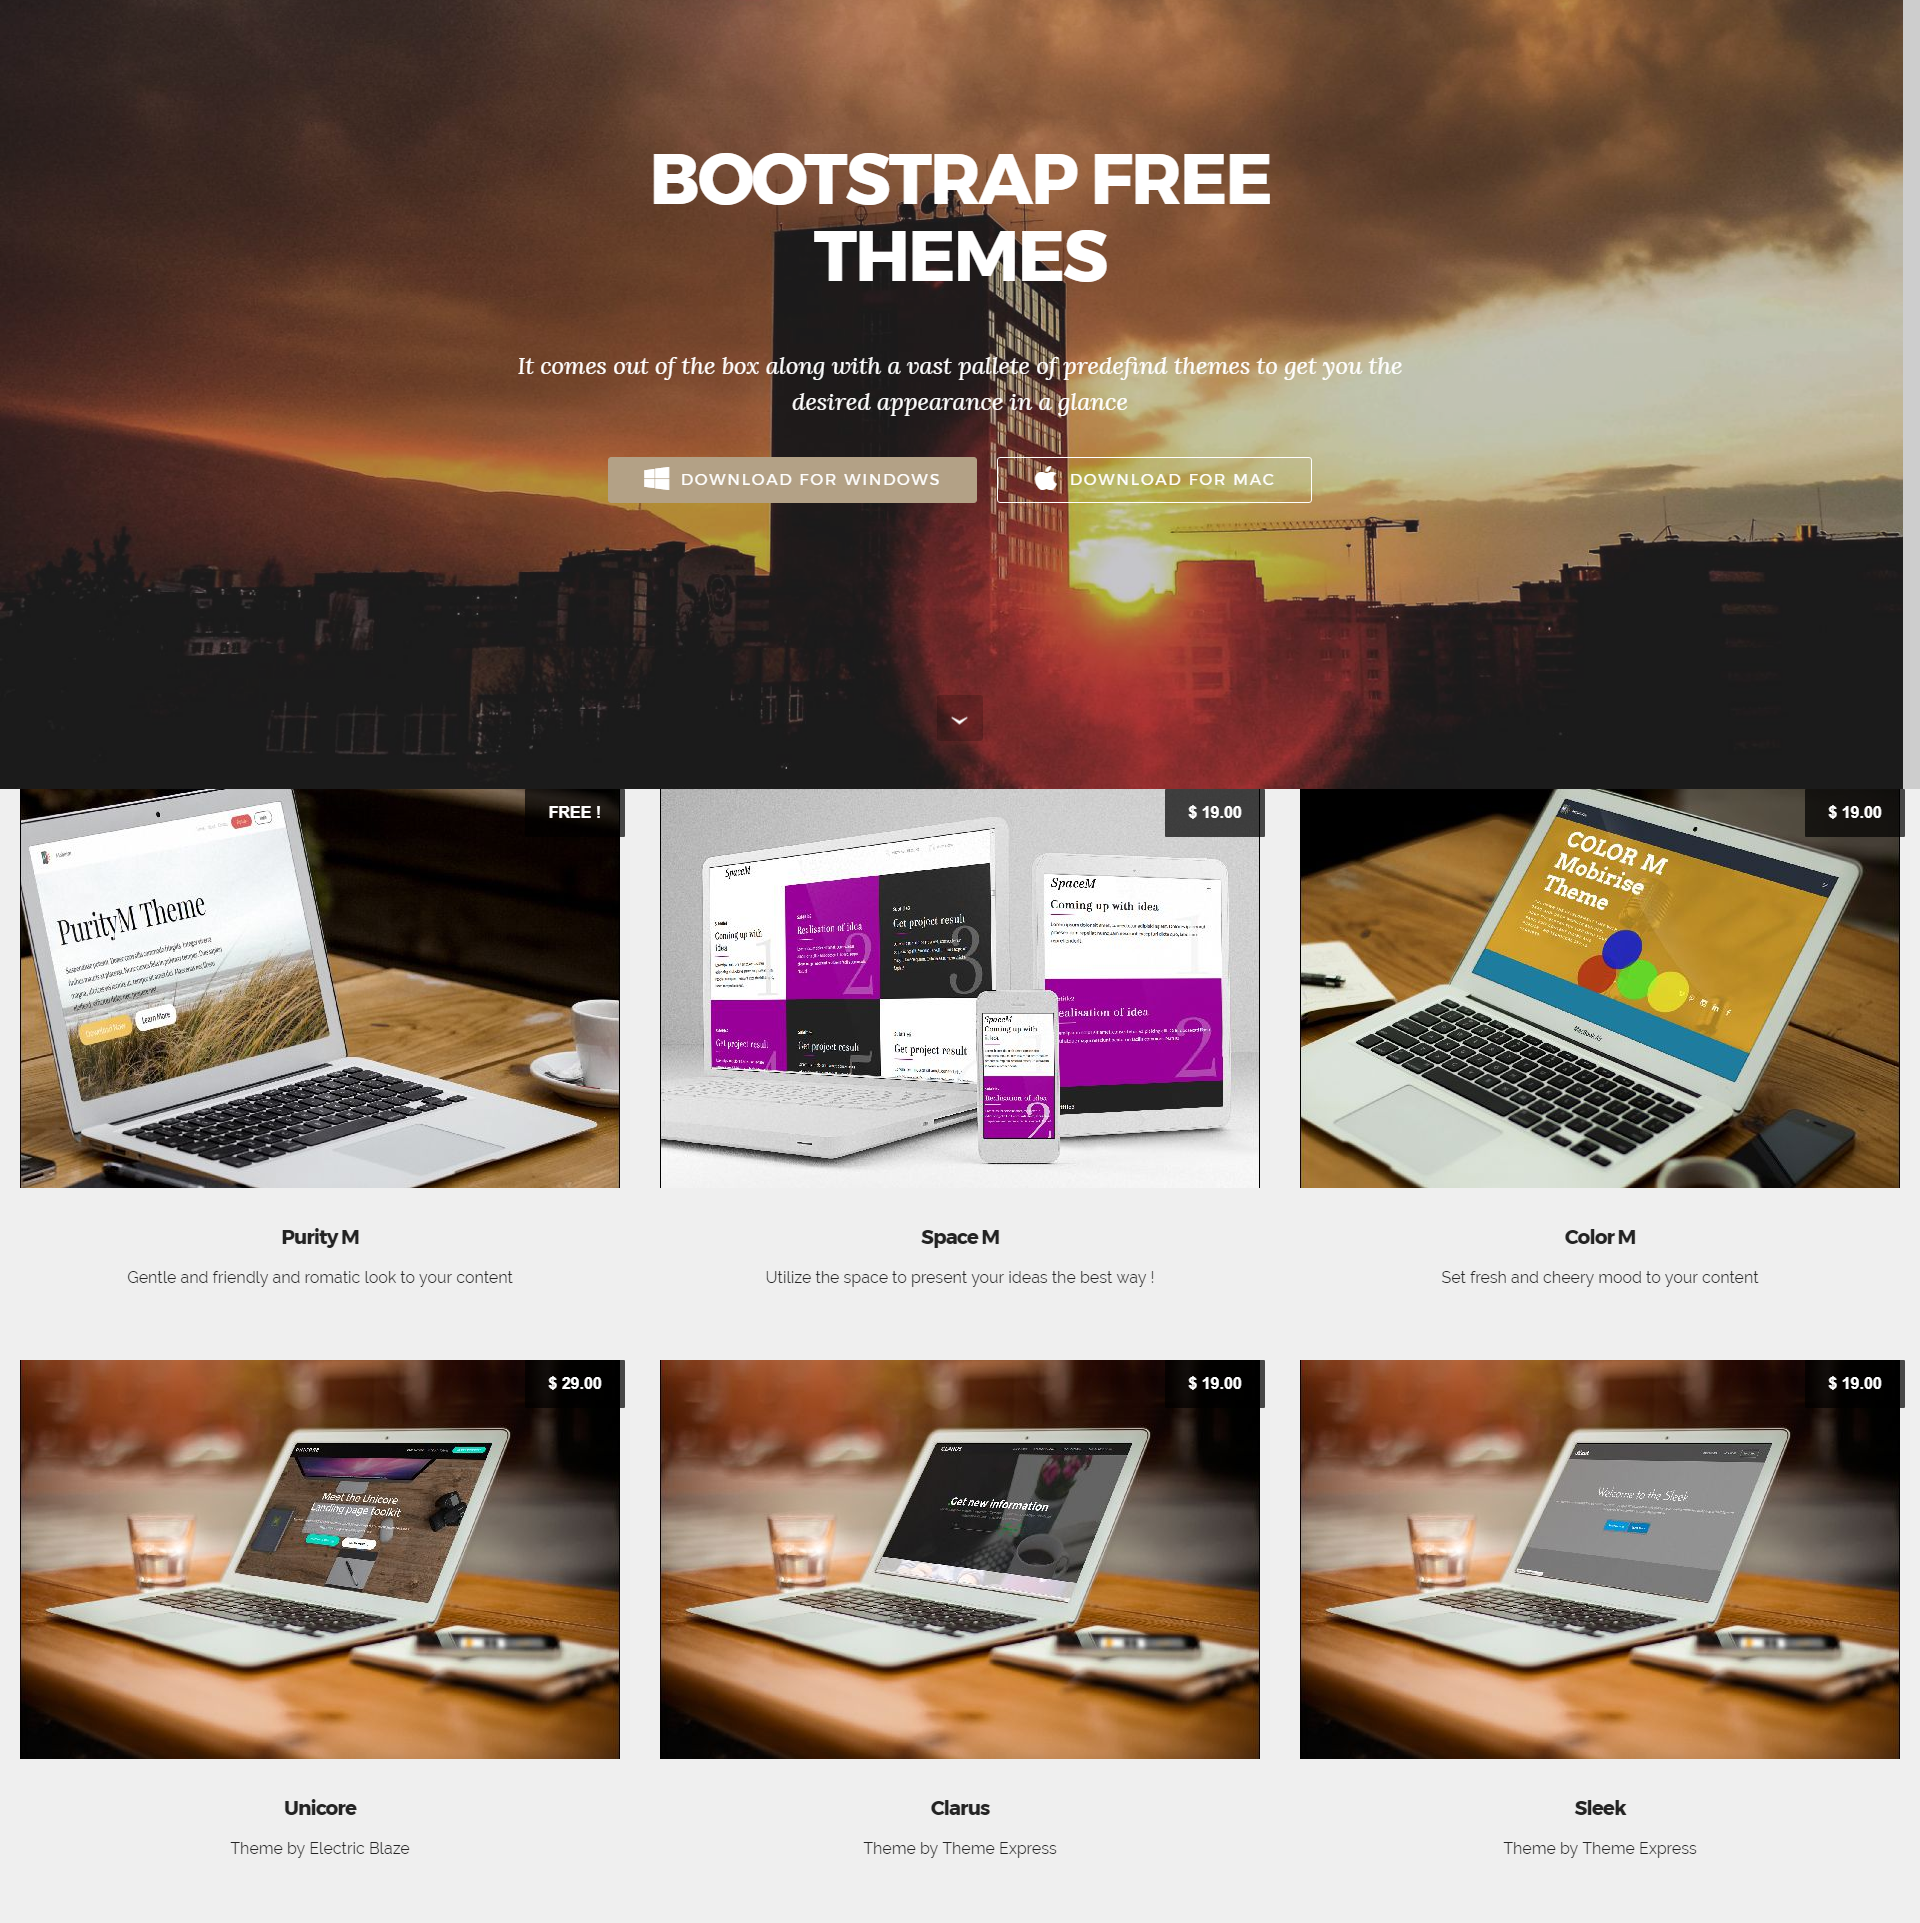 CSS3 Bootstrap Mobile-friendly Themes